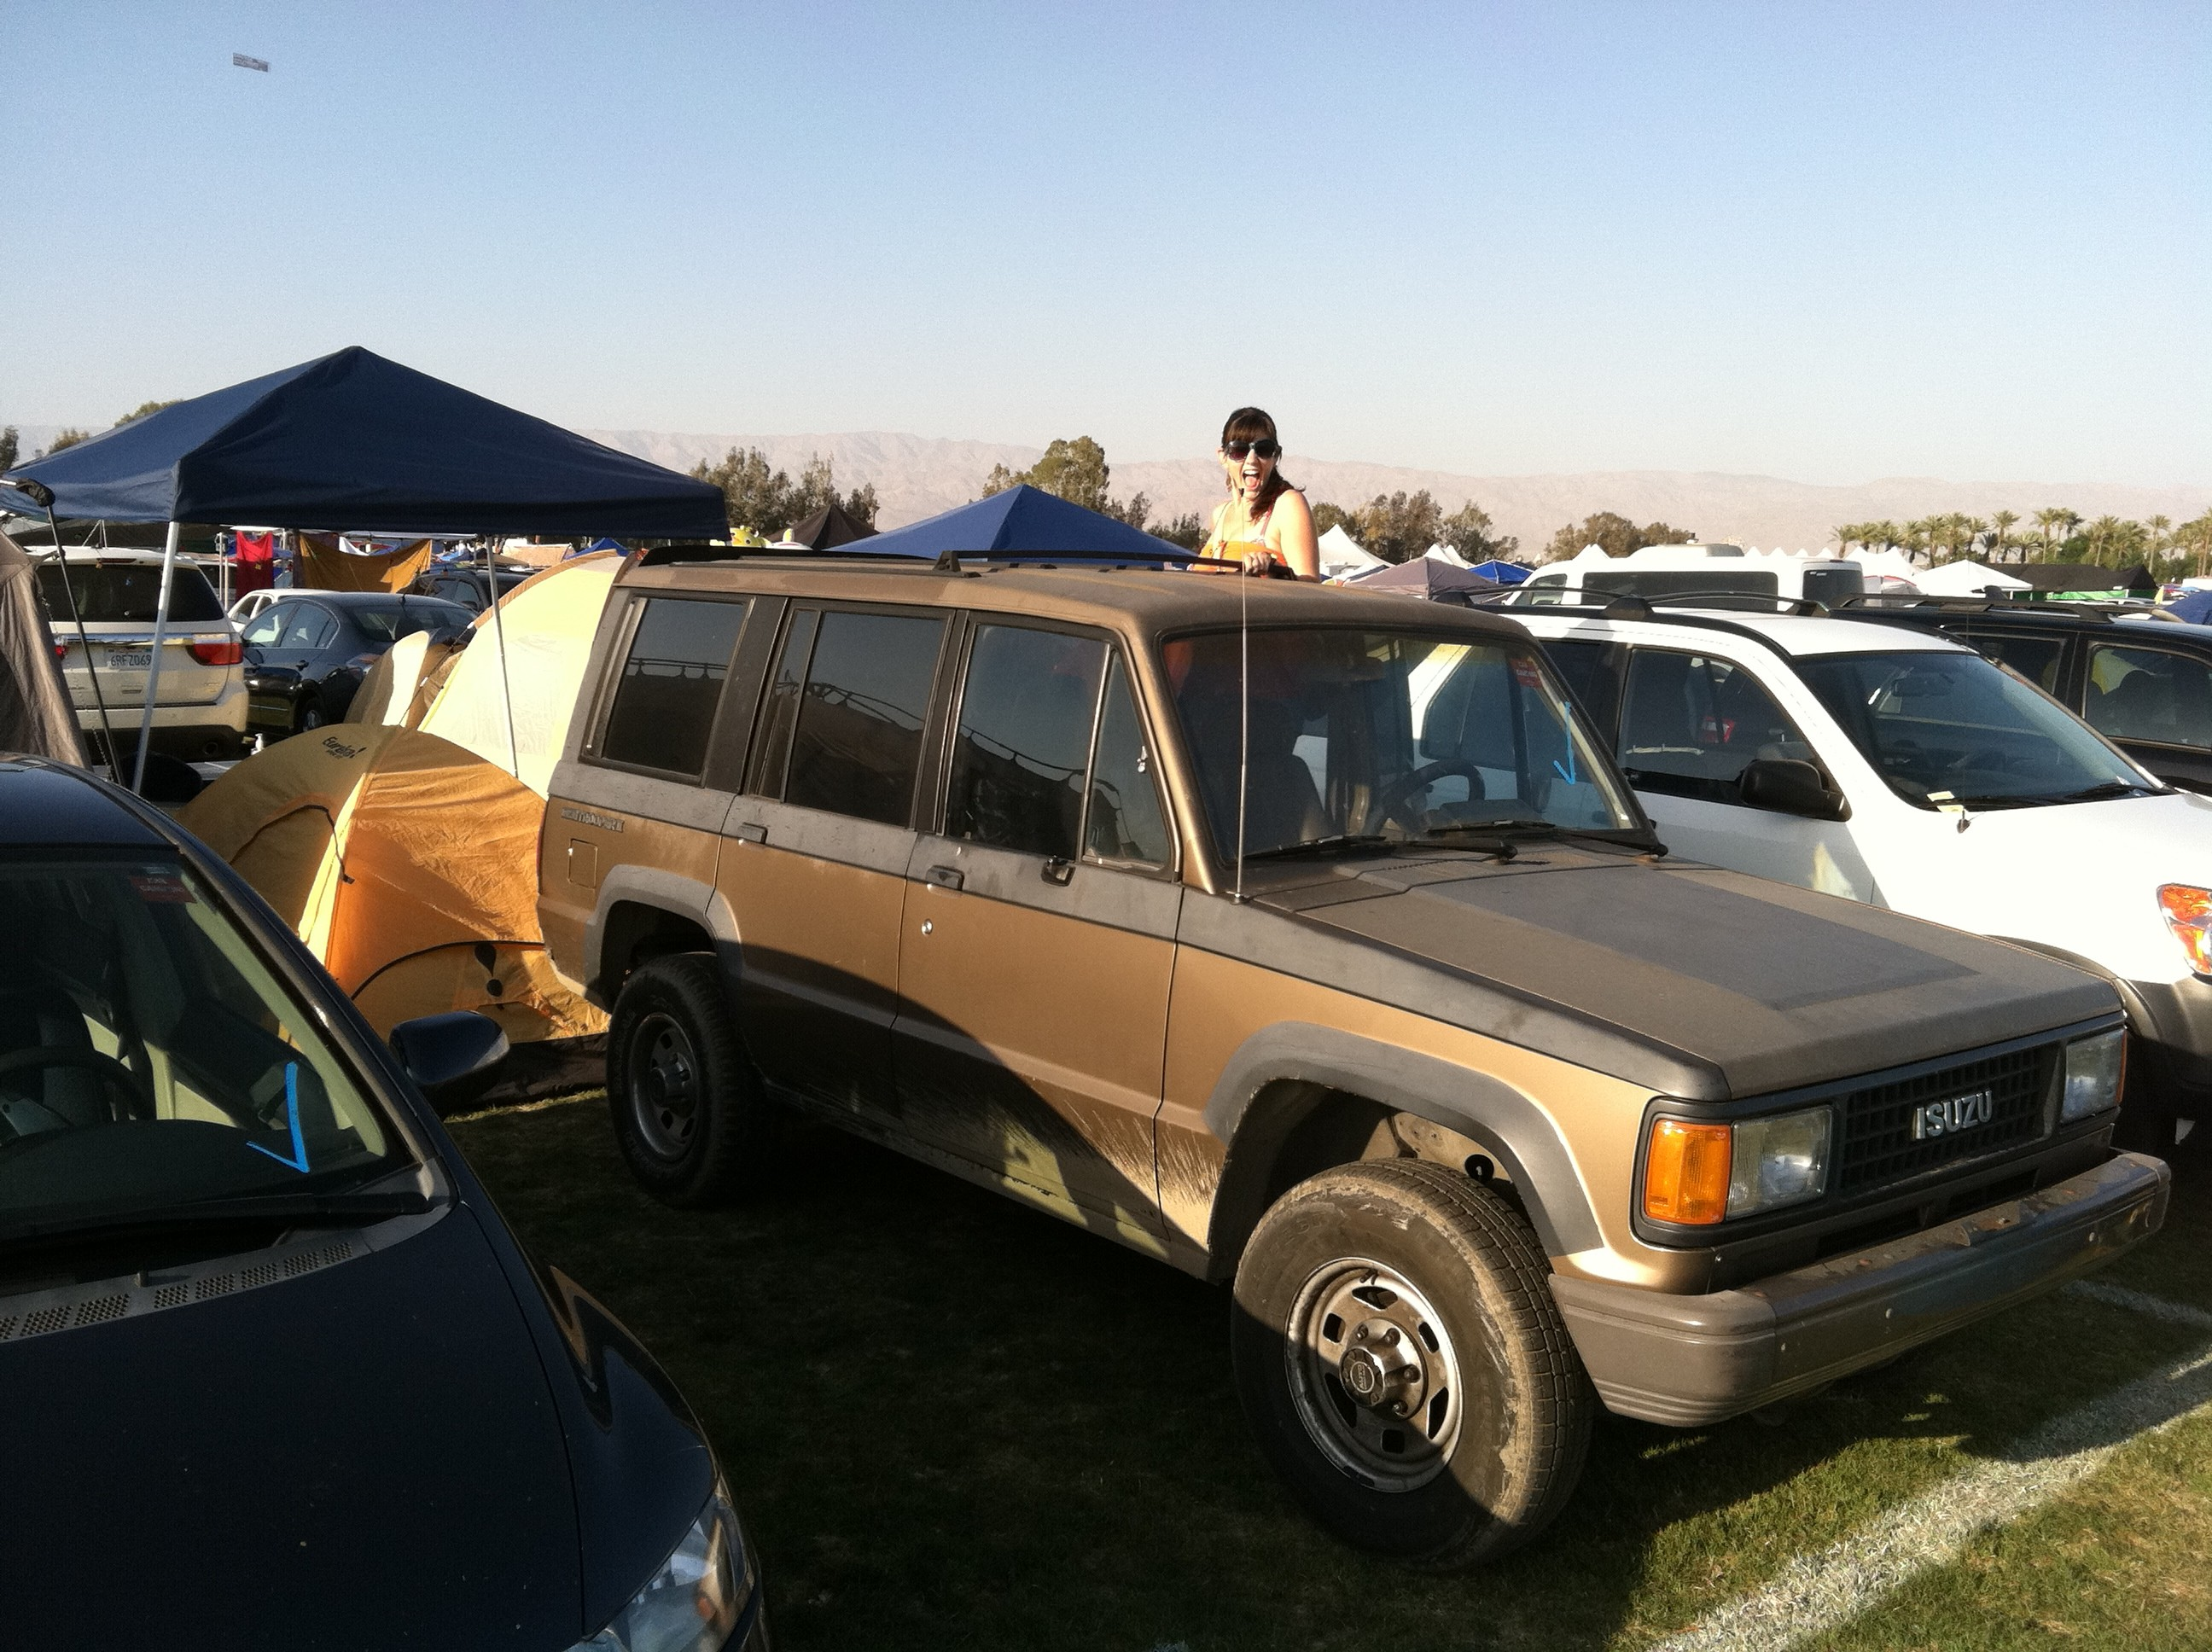 Car Camping at Coachella? Here's What To Expect